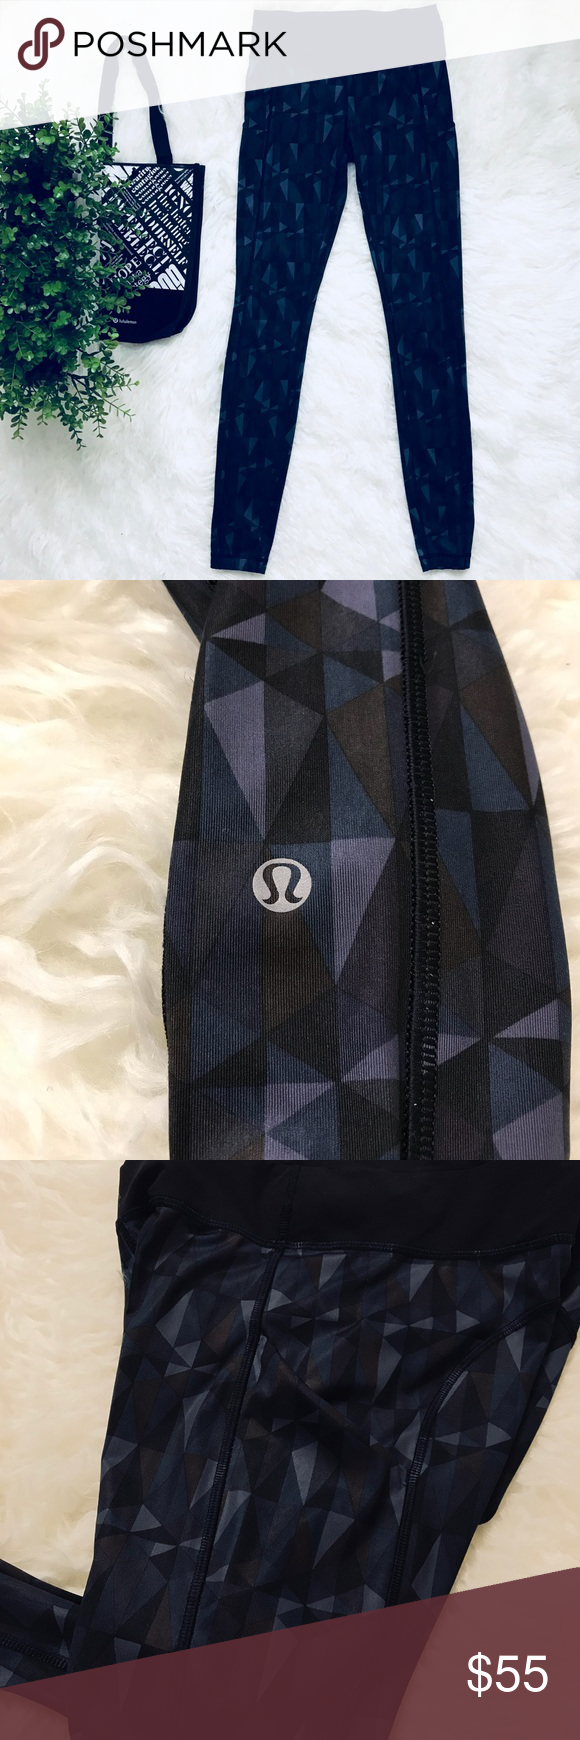 Lululemon Speed Tight II Stained Glass 4 *Luxtreme print: stained glass love nightfall/black   these lulu leggings are so stinkin' cute! they are full length and in great condition. they have own been worn once. the colors may vary slightly due to the lighting. As usual, don't hesitate to ask questions, i'm happy to answer. lululemon athletica Pants Leggings